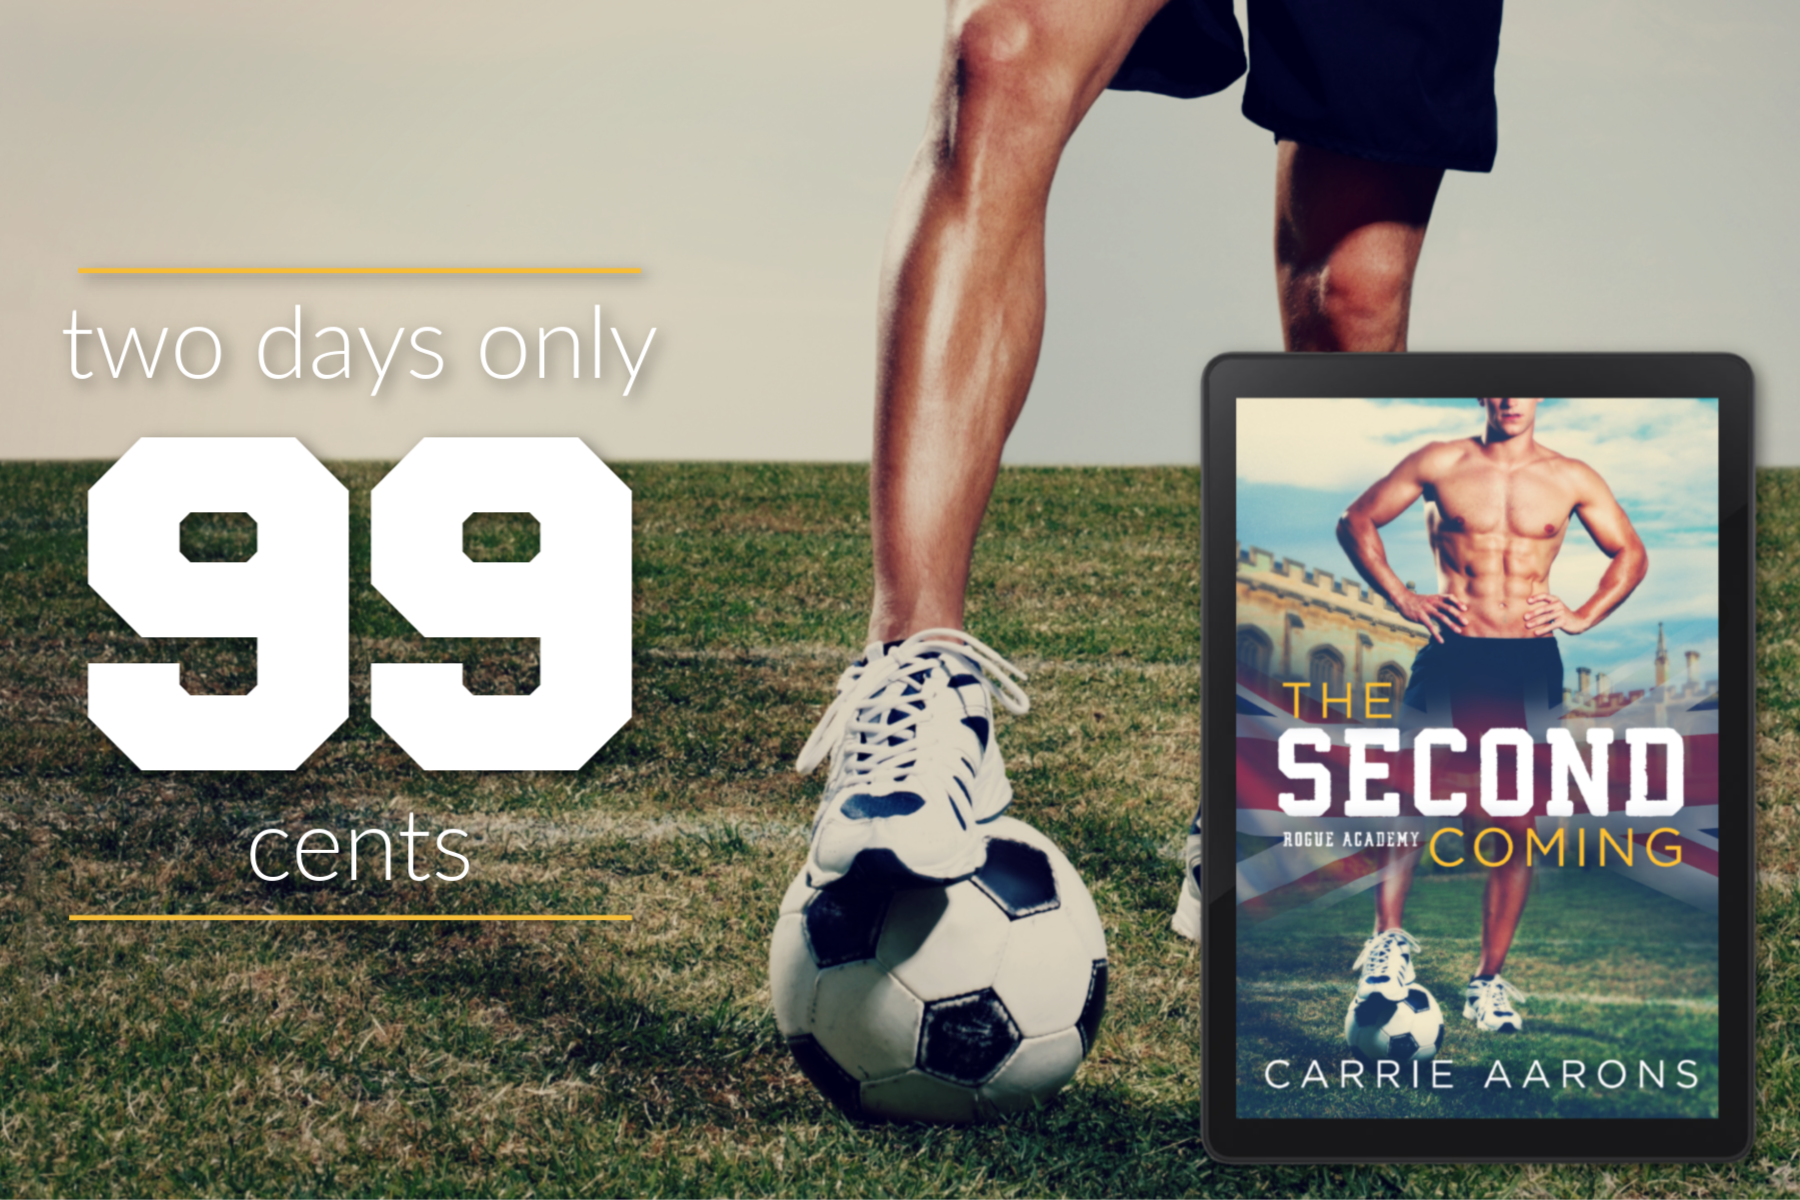 Sale: The Second Coming by Carrie Aarons